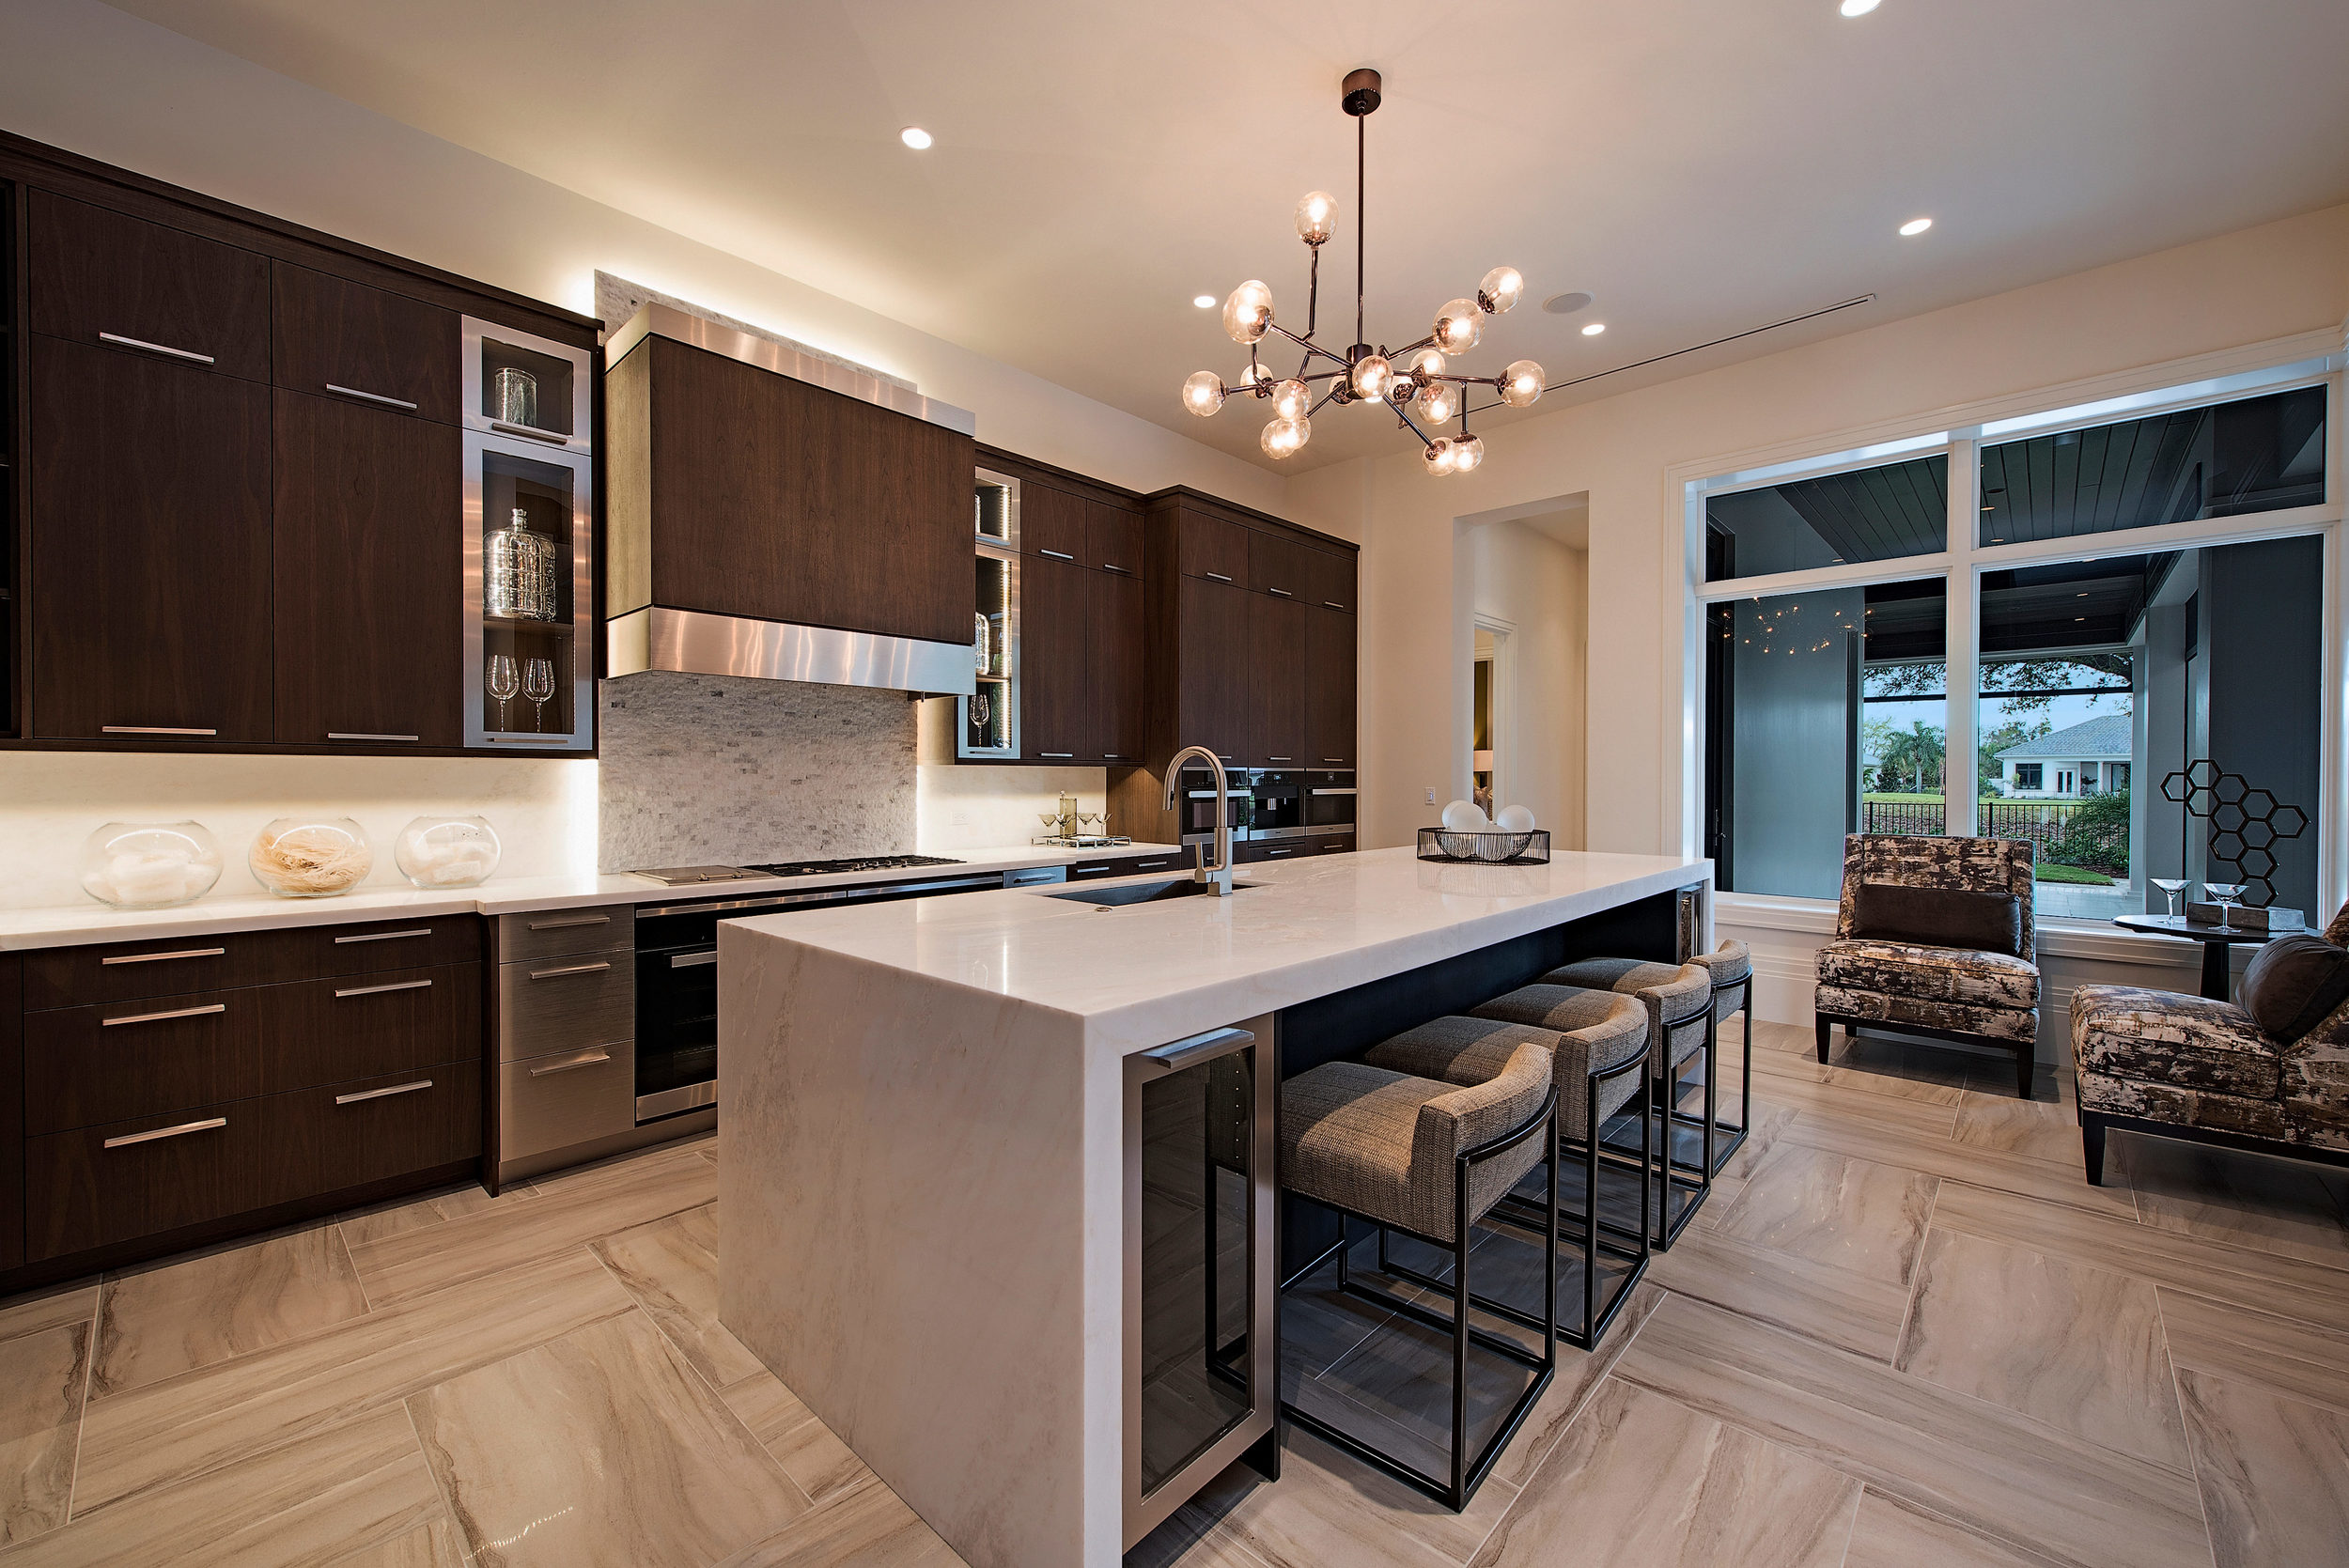 13870 Williston Way Naples FL-print-005-Kitchen2-4096x2734-300dpi.jpg